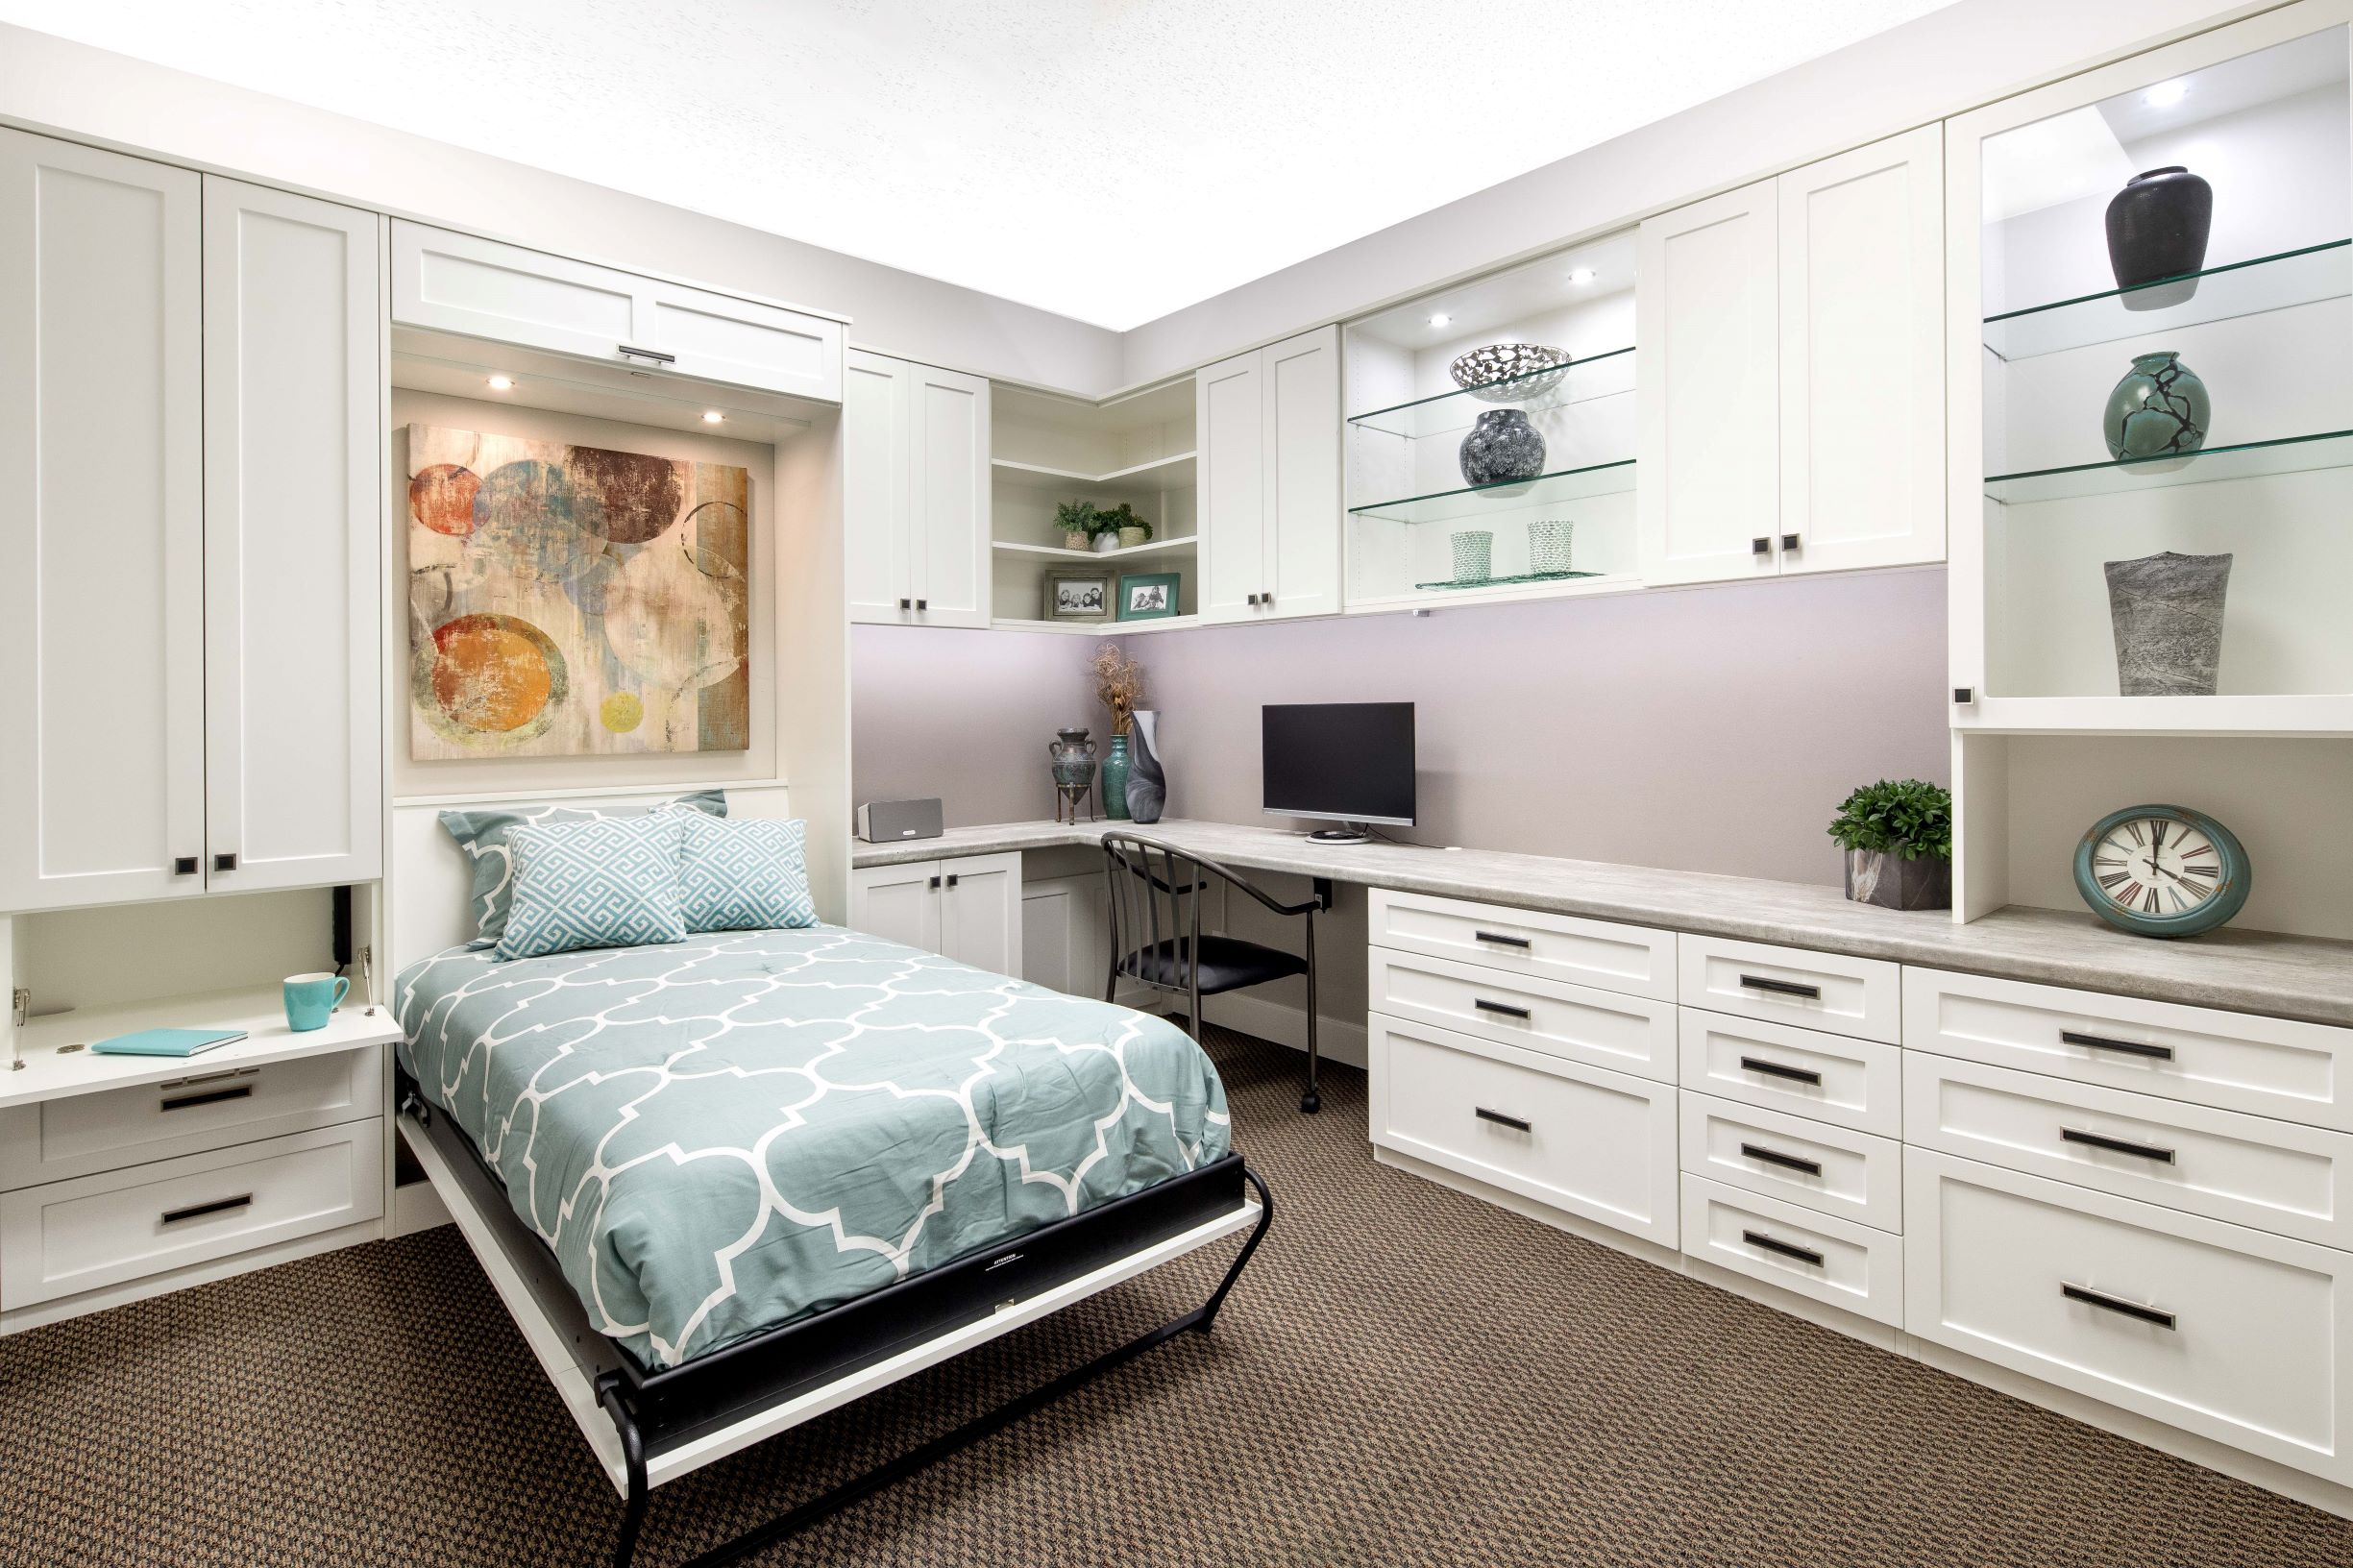 2017-01-06_Home Office with Wall Bed_White (16)-PX